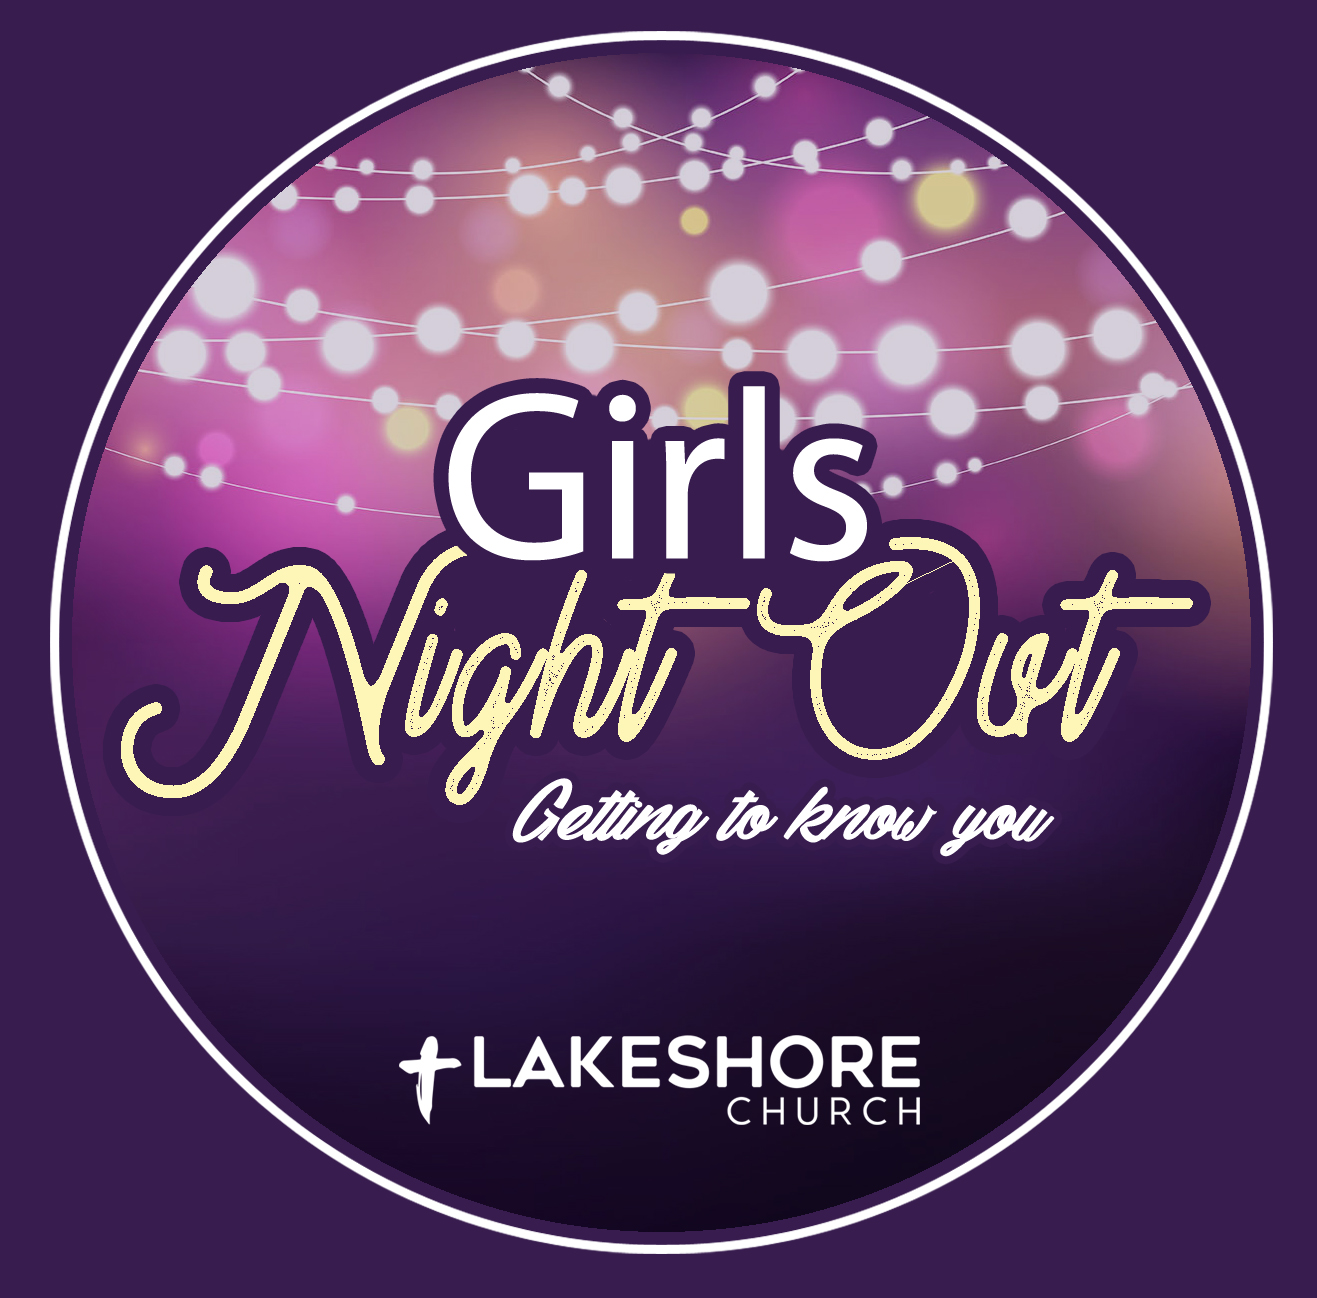 GNO (Girls Night Out) is a fun way to connect with the ladies of Lakeshore Church! We have various events that are full of fun and fellowship! As always. please invite a friend to any of our GNO events!